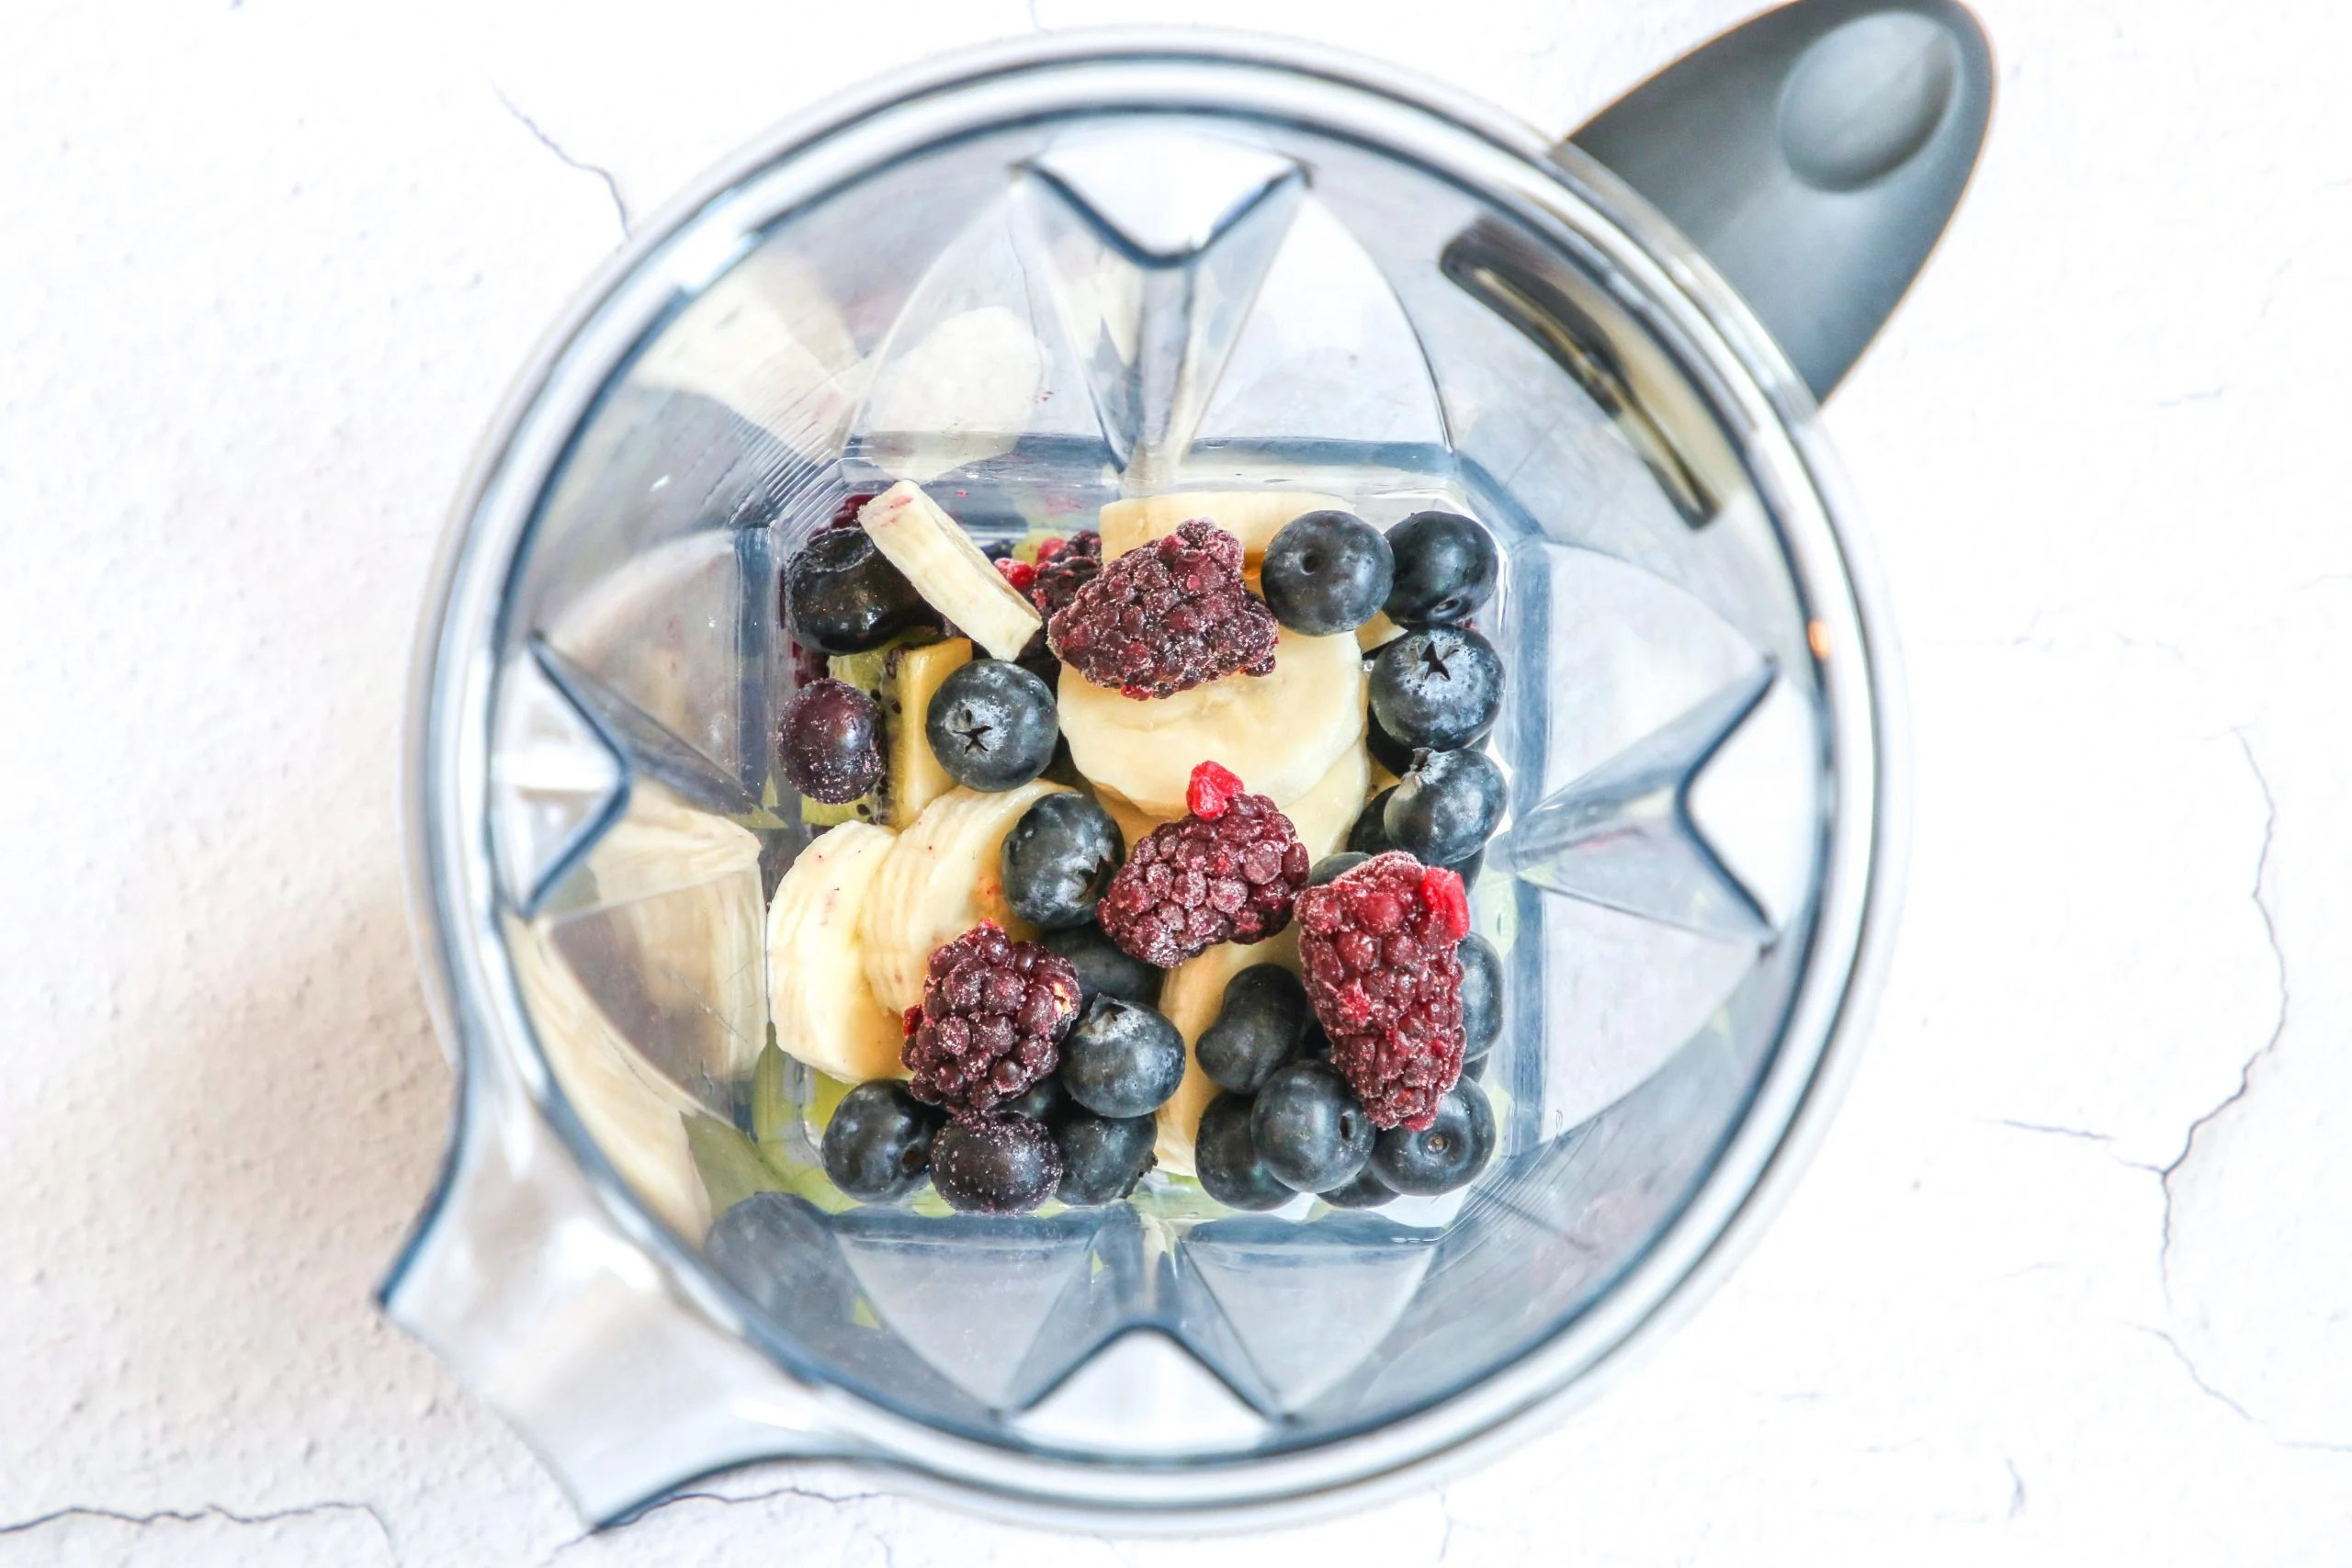 picture of banana and berries in a blender